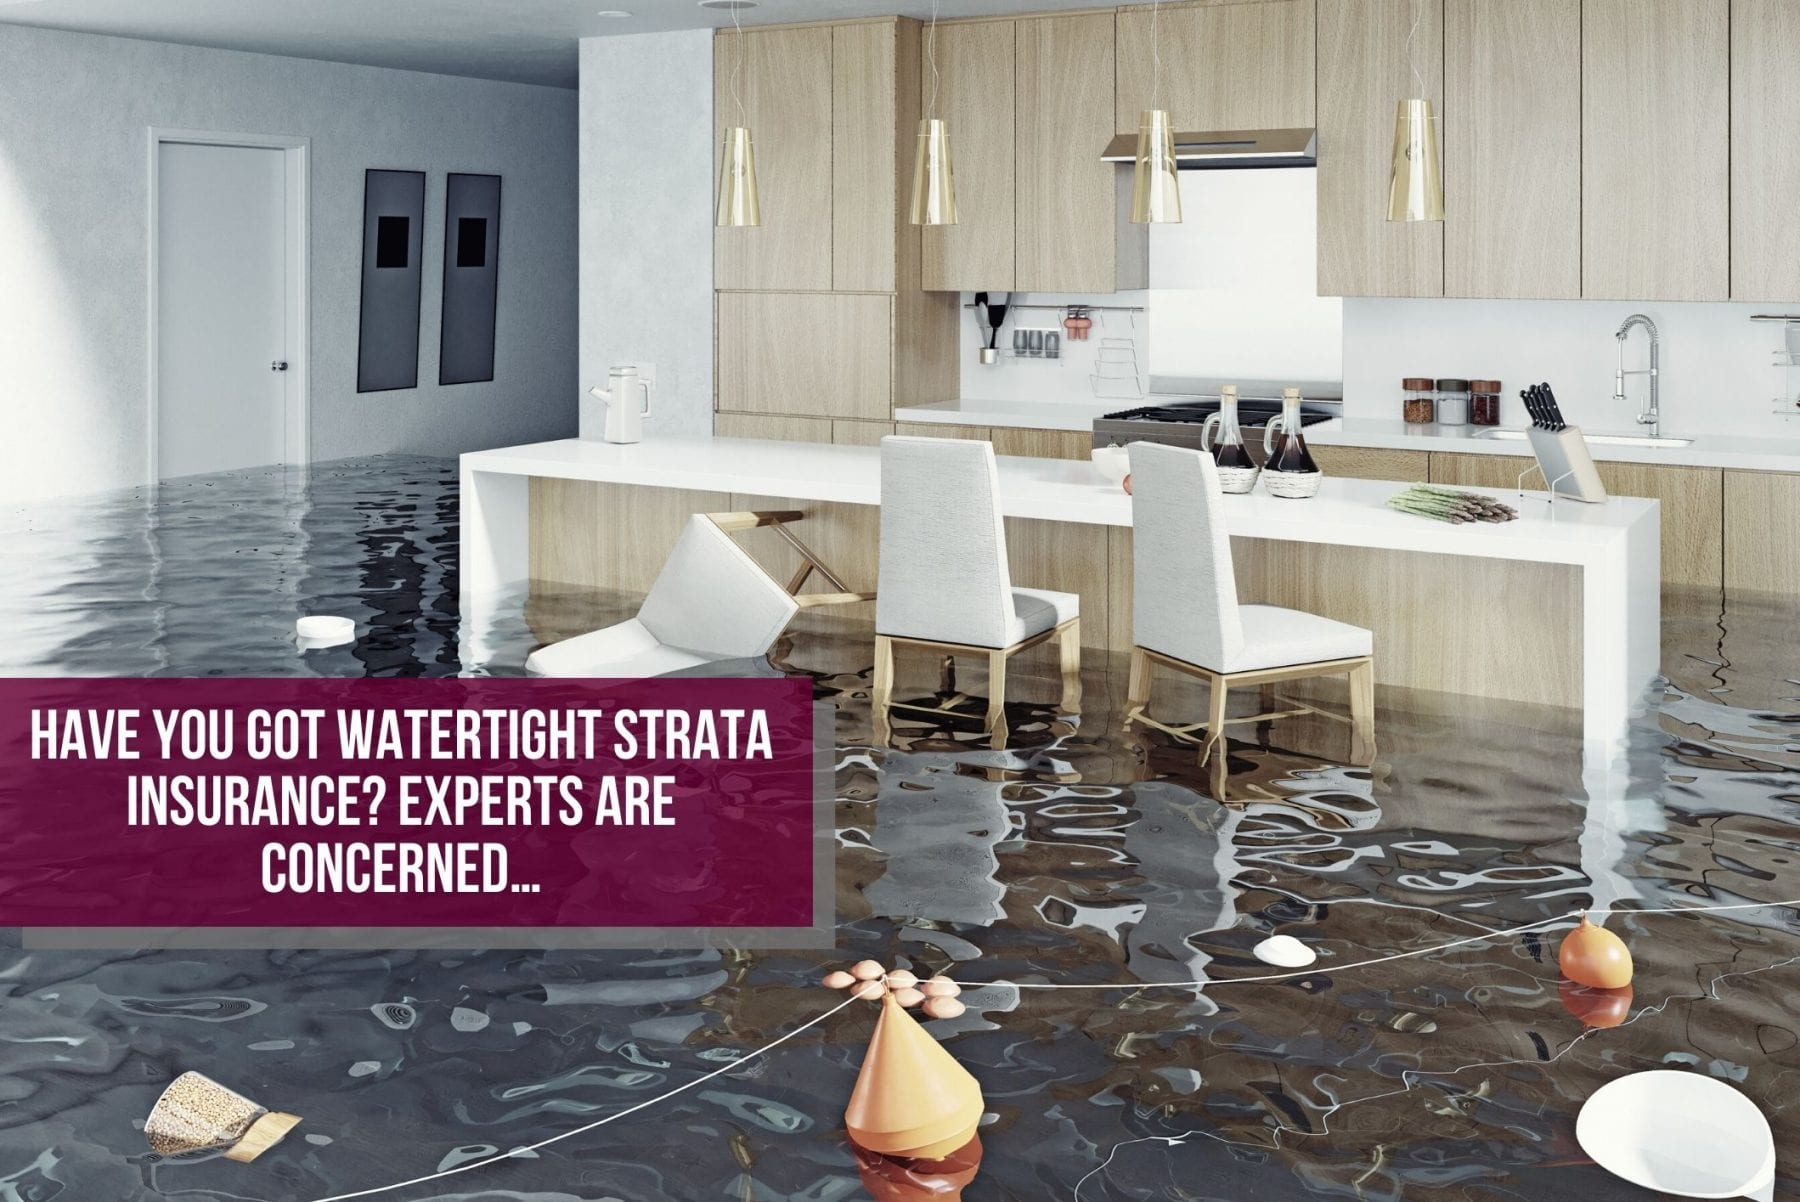 Water damage in strata property